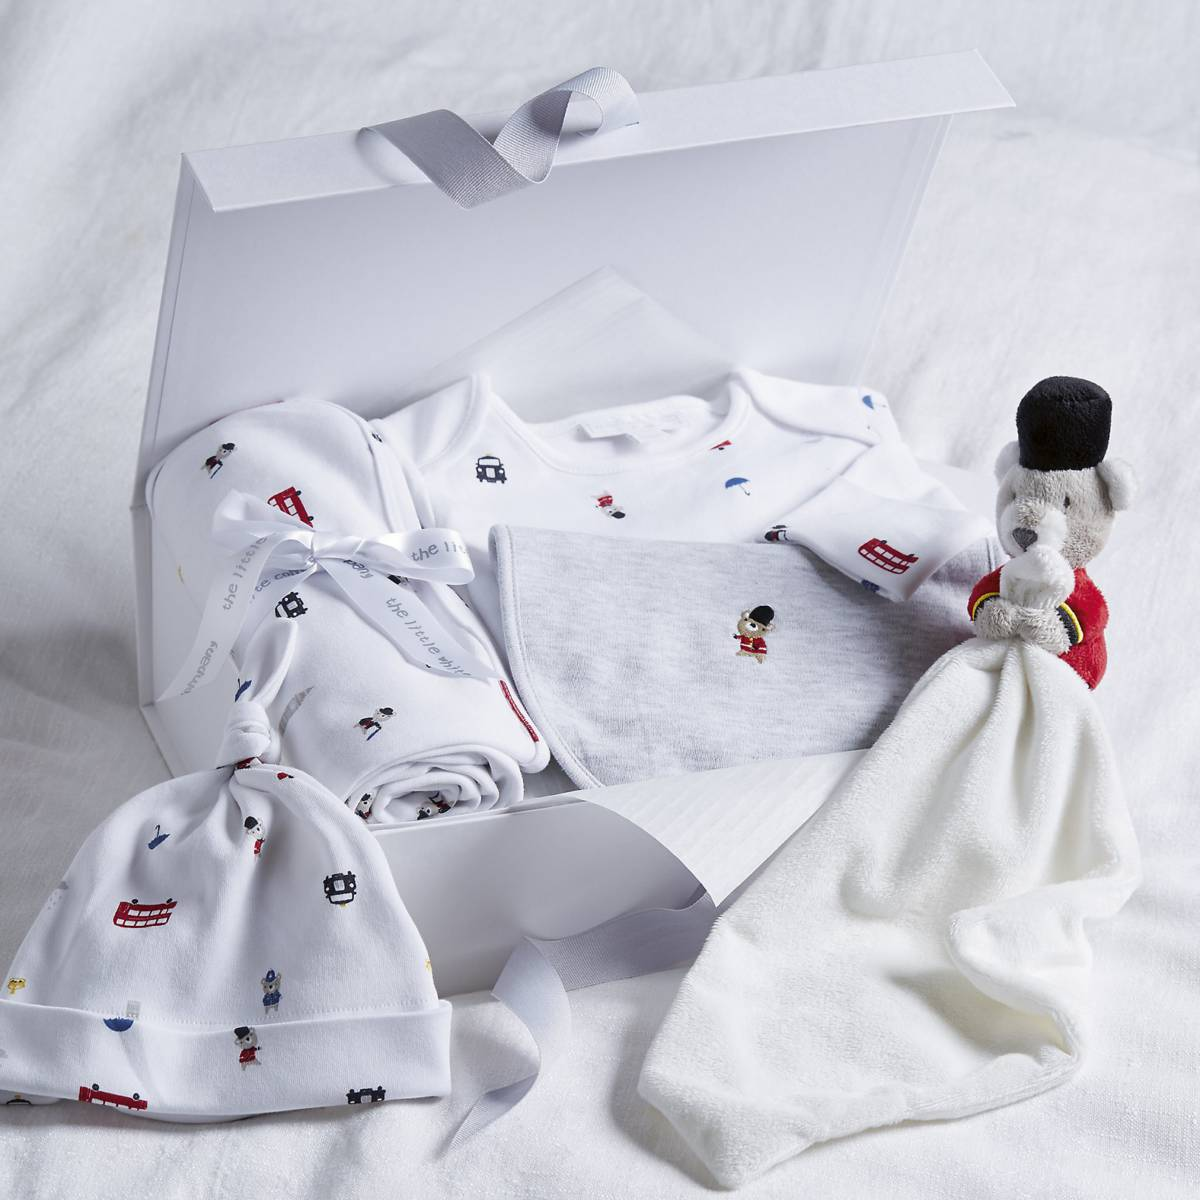 Baby Gift Set London : Little london bear baby gift set multi british mums